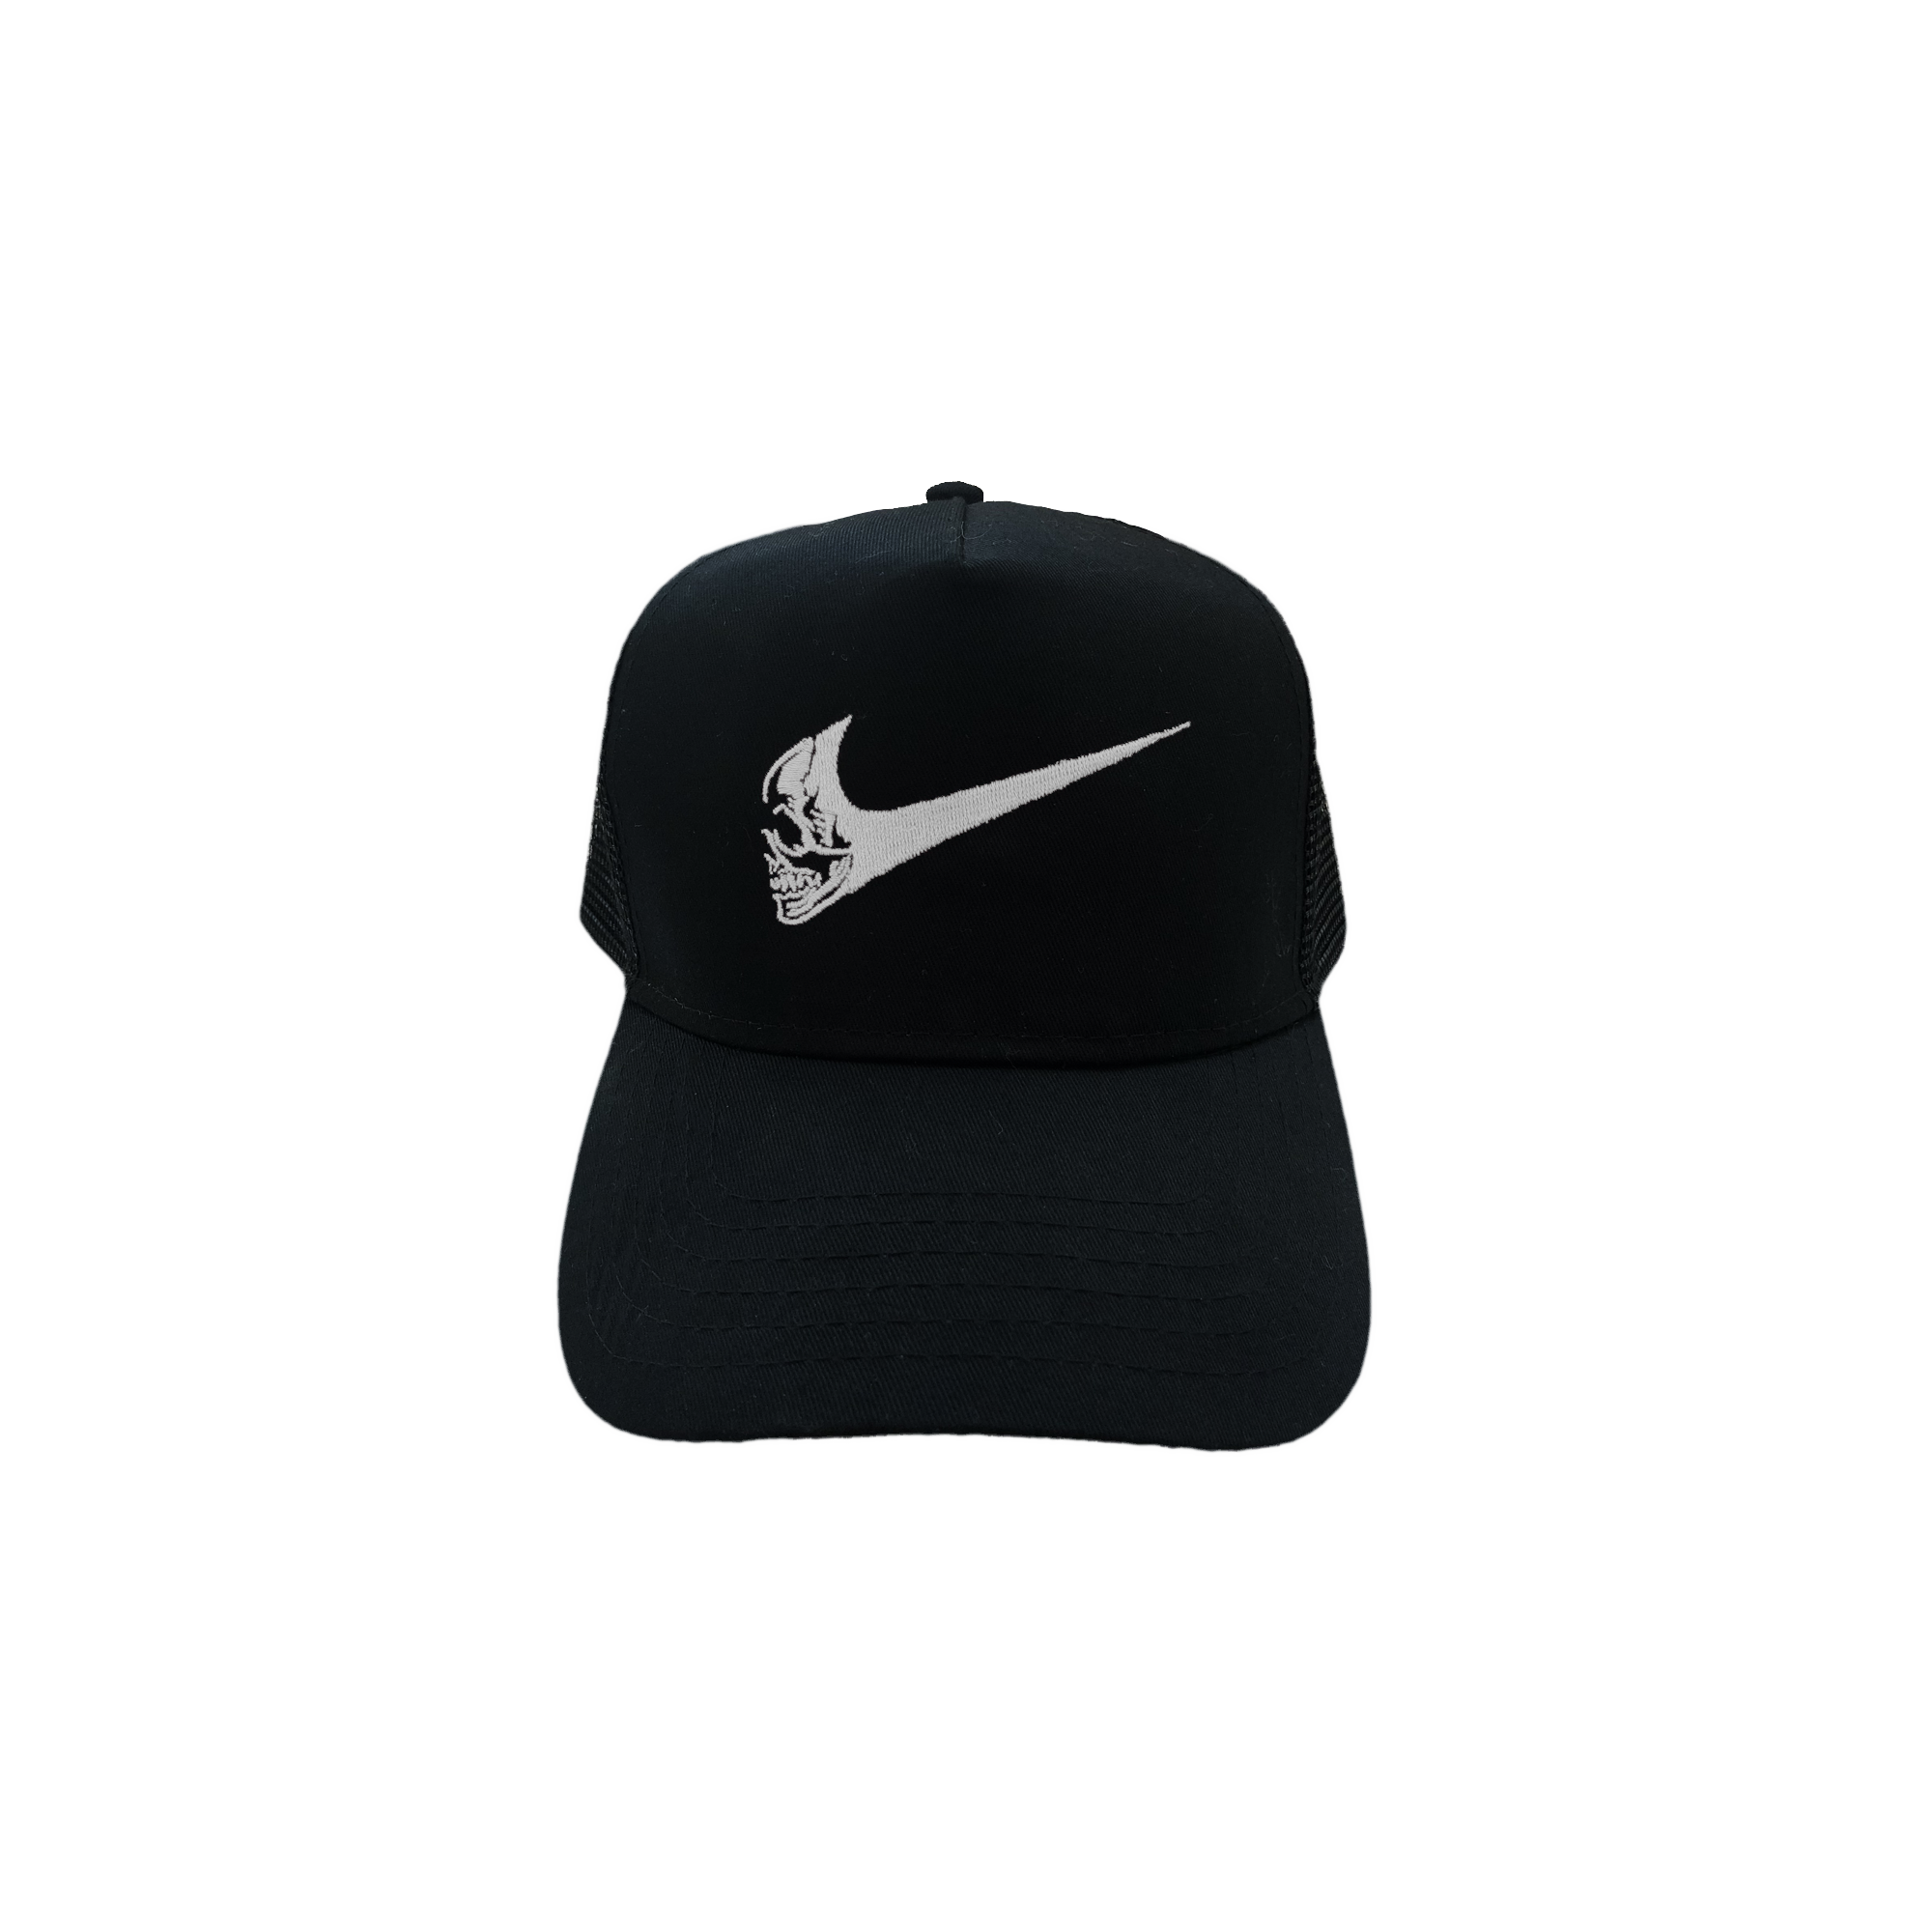 White-Hat-1.png